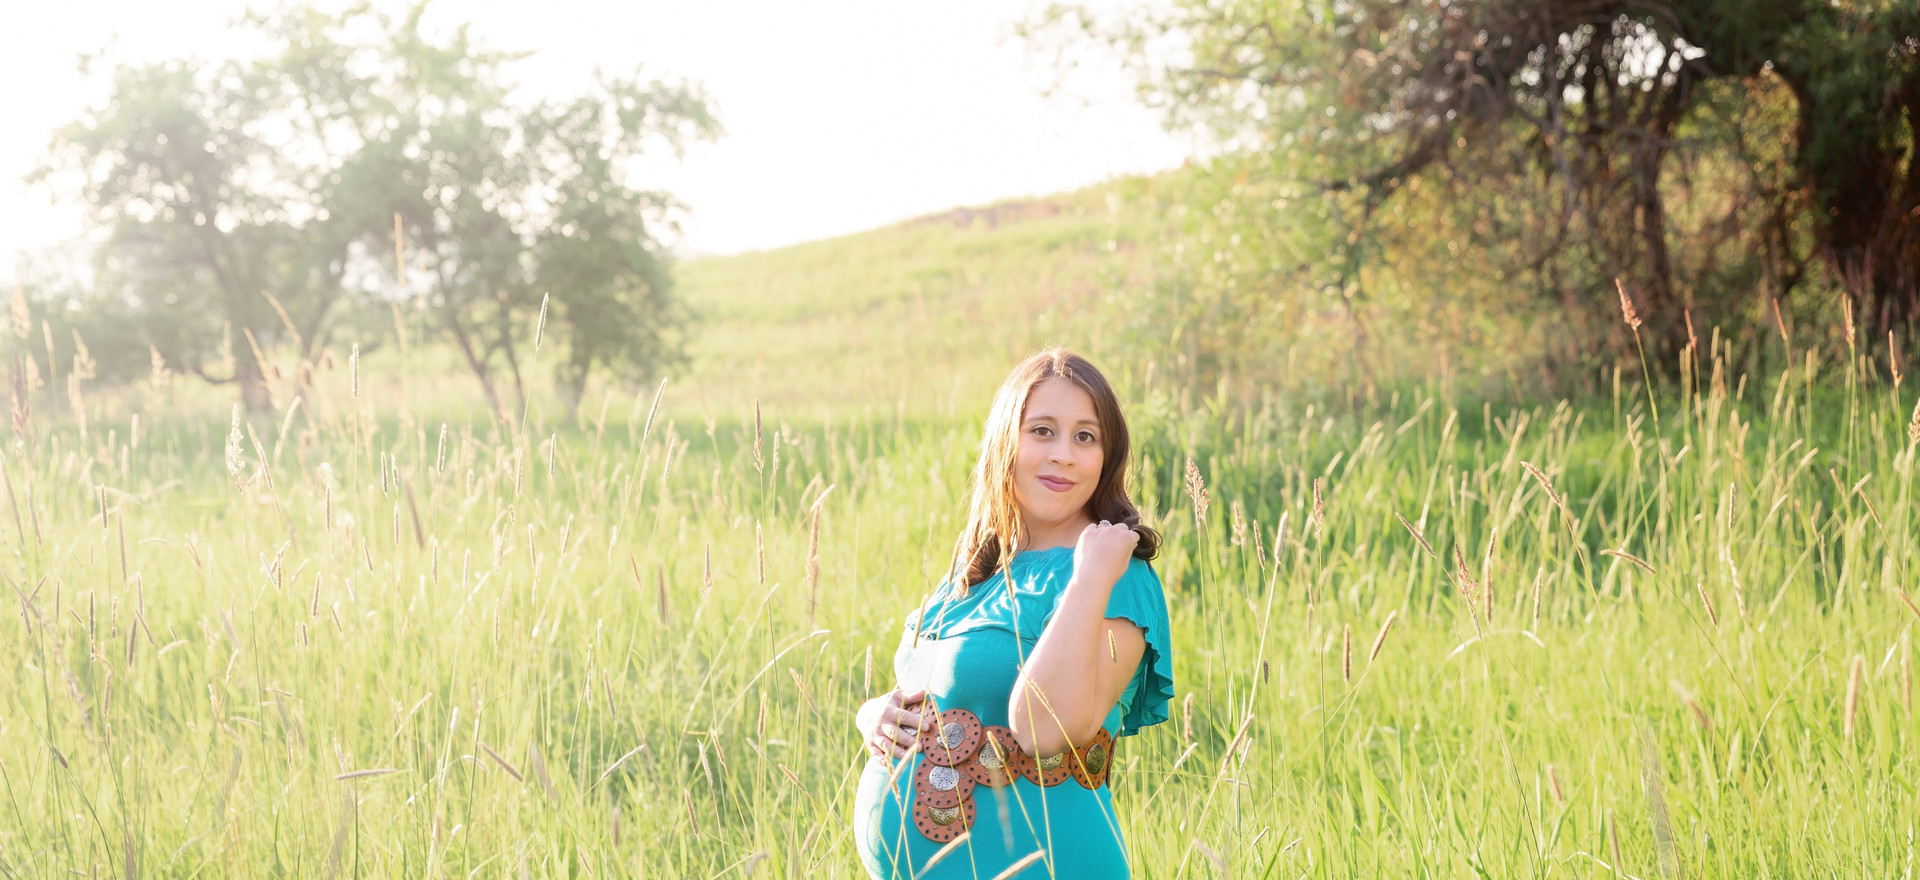 Maternity pictures in Moscow Idaho